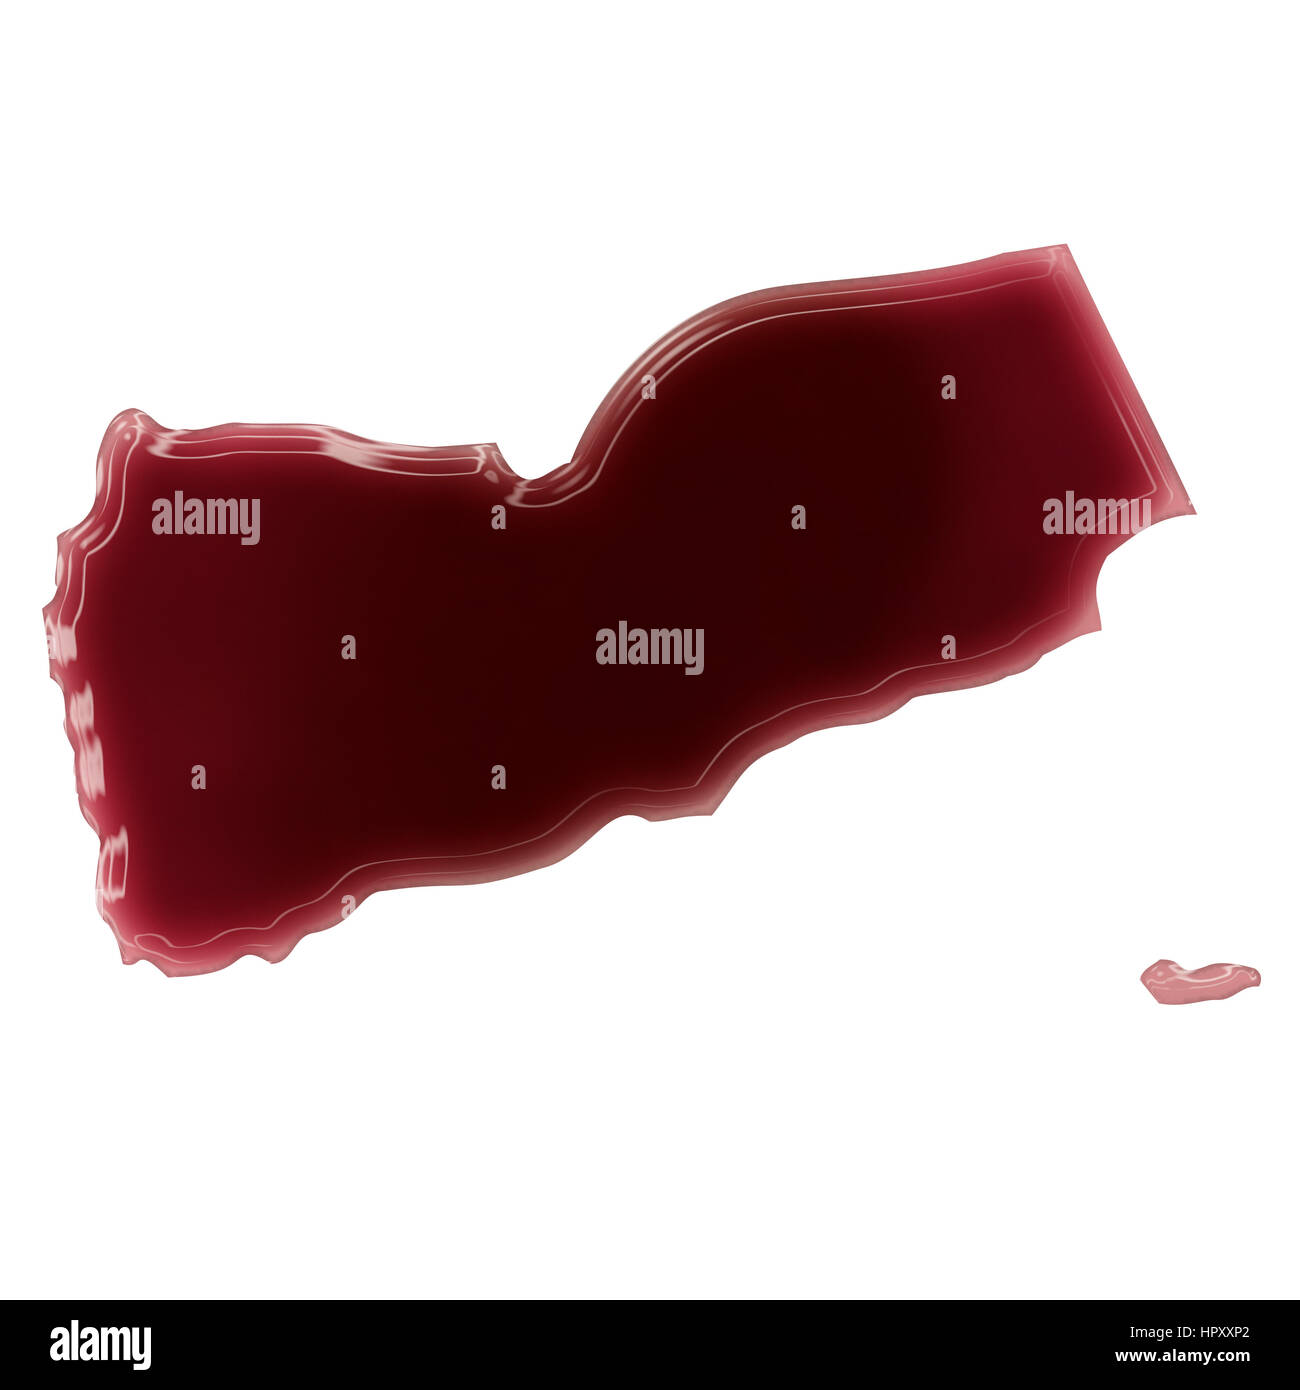 Pool of blood (or wine) that formed the shape of Yemen. (series) Stock Photo